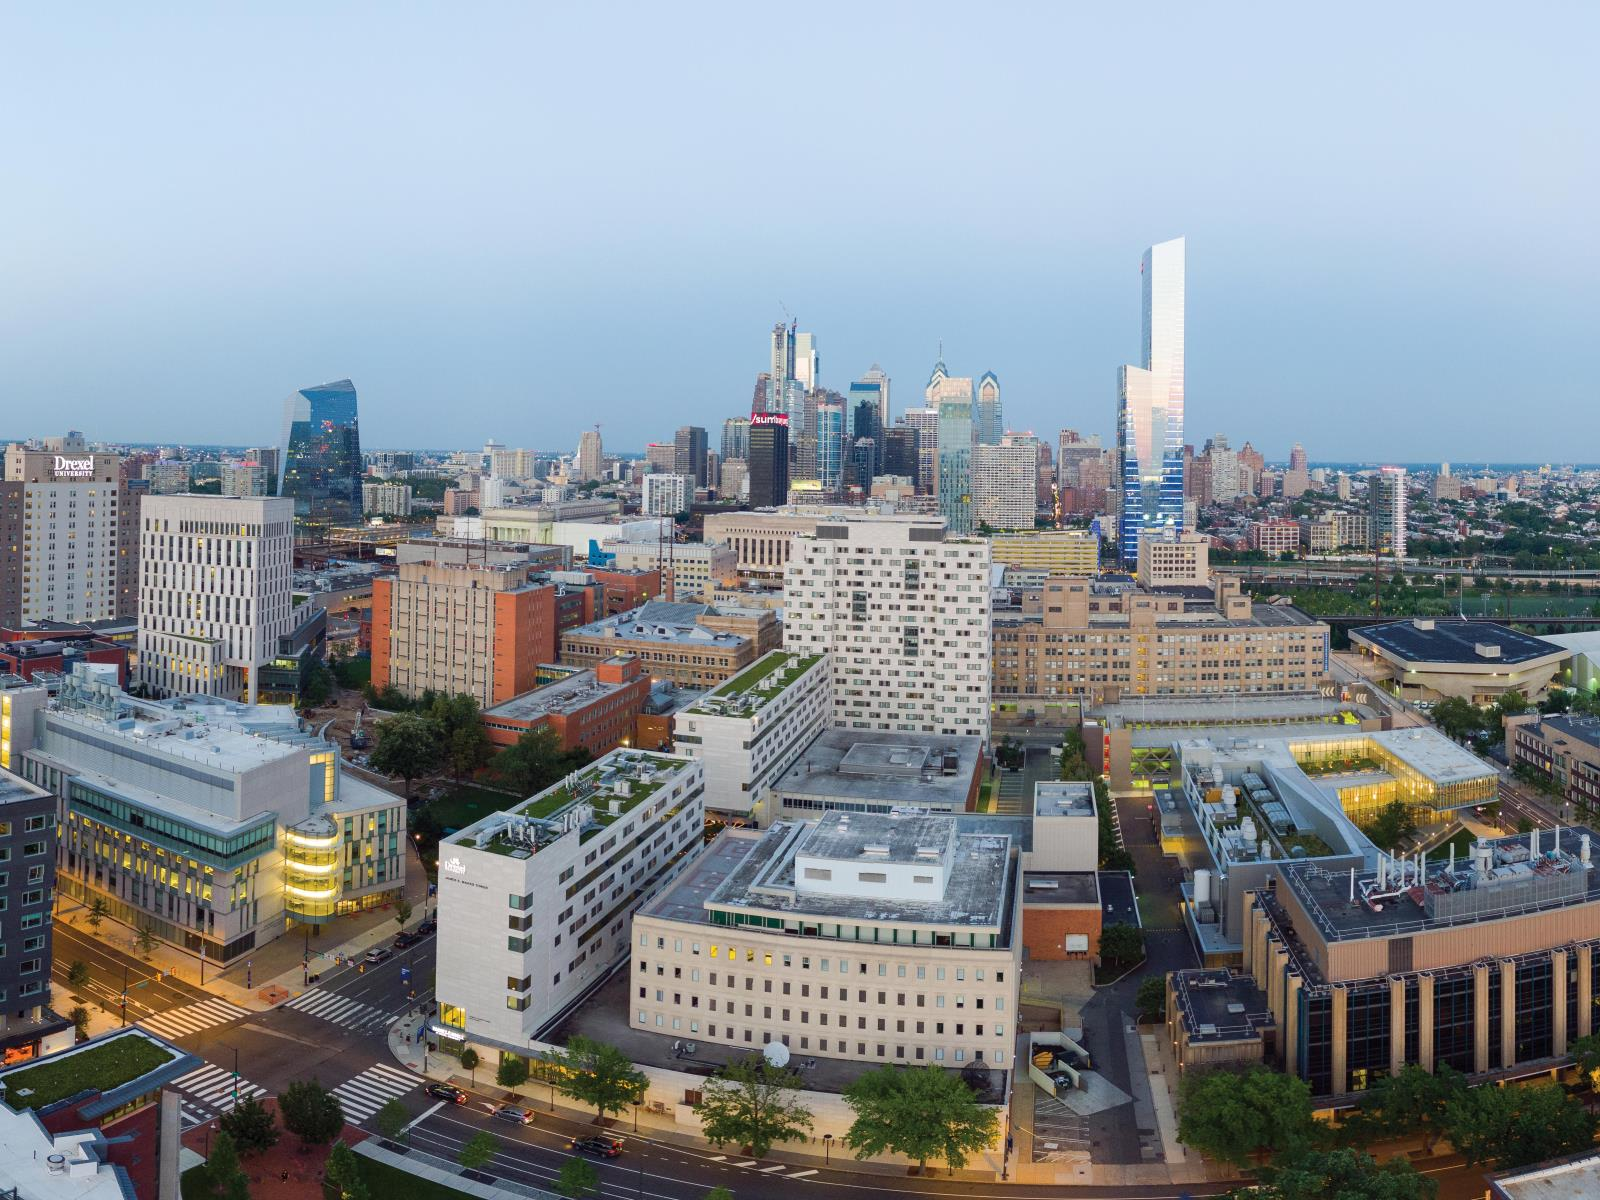 Drone aerial view of Philadelphia skyline